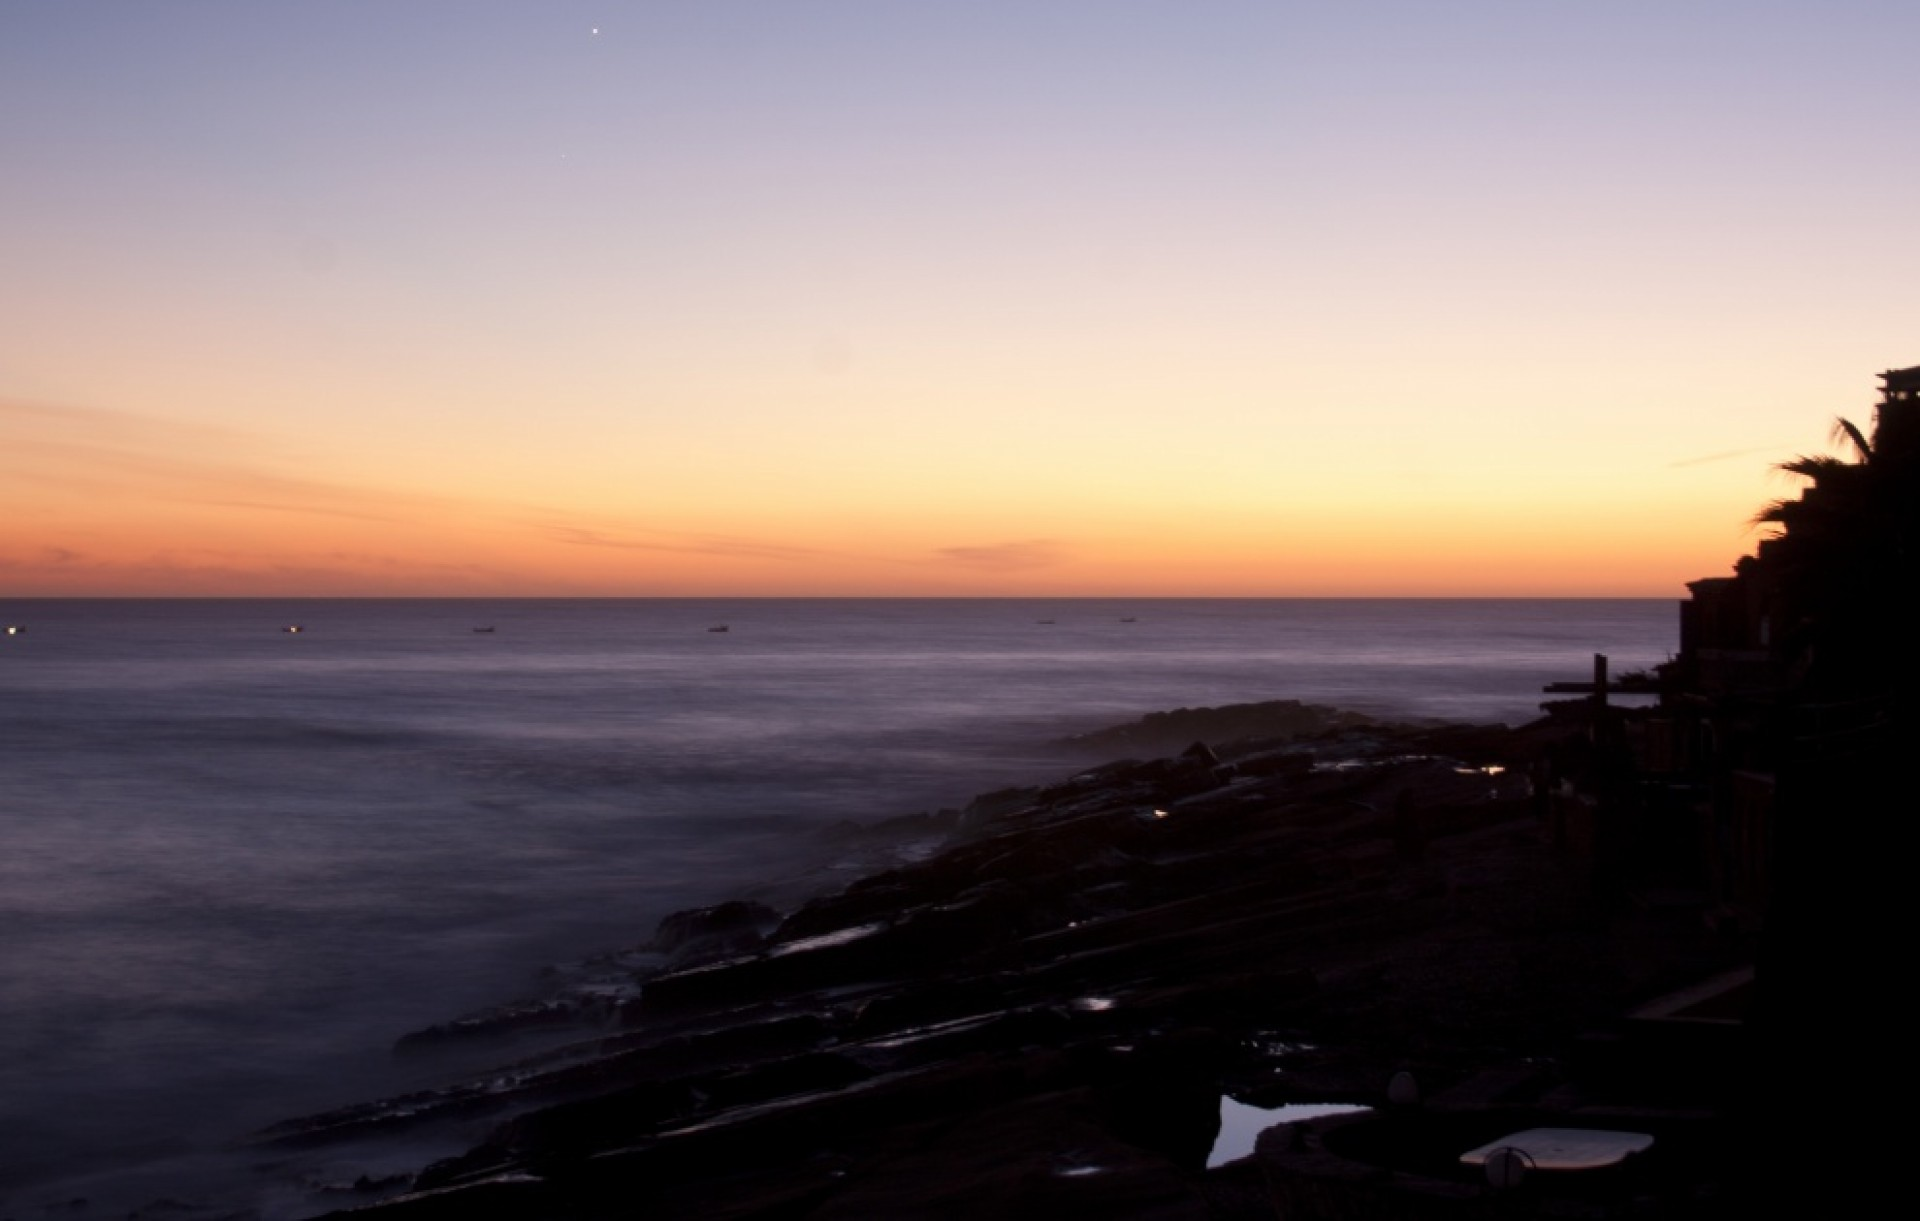 mike blackshaw's photo of Anchor Point